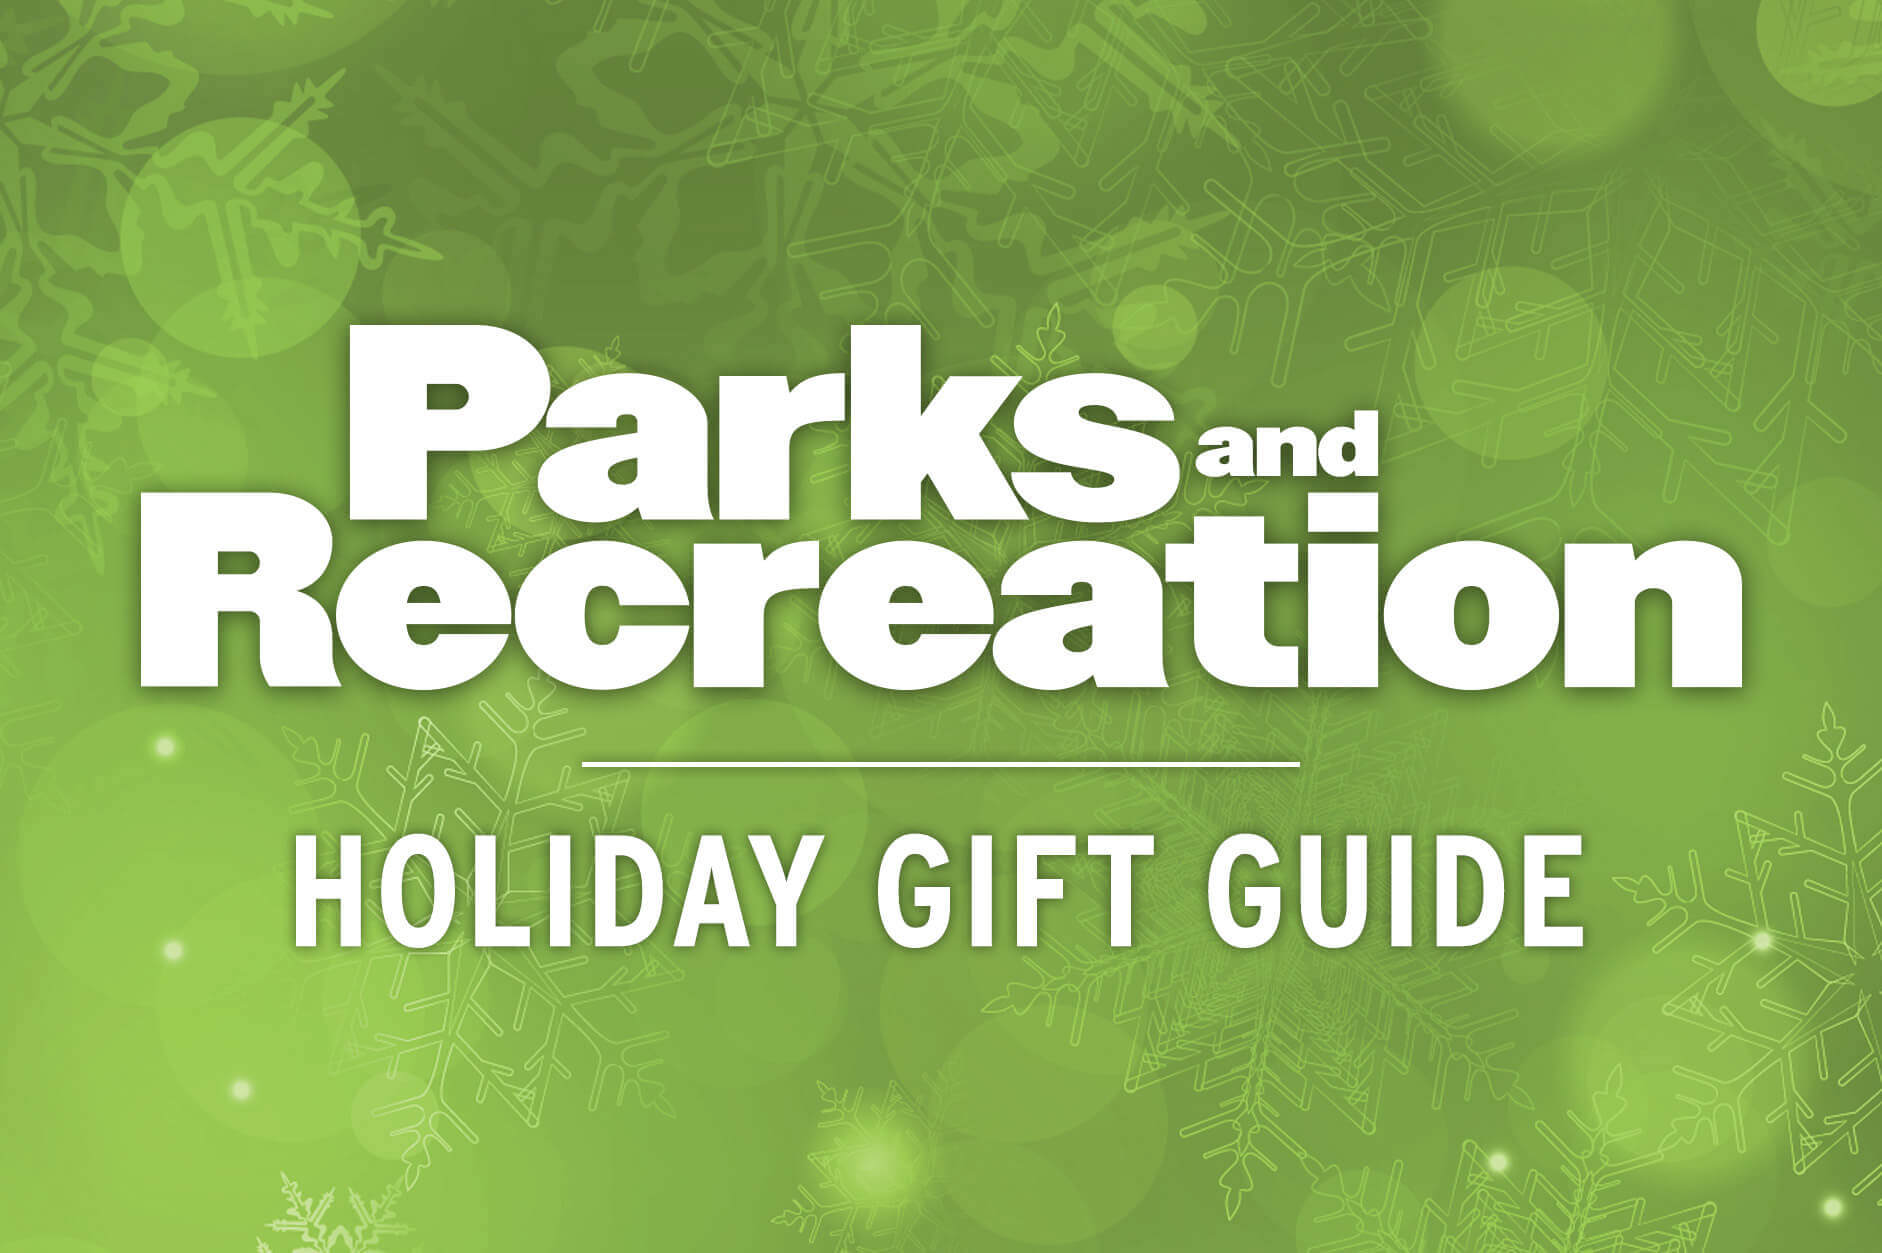 Parks and Recreation Holiday Gift Guide